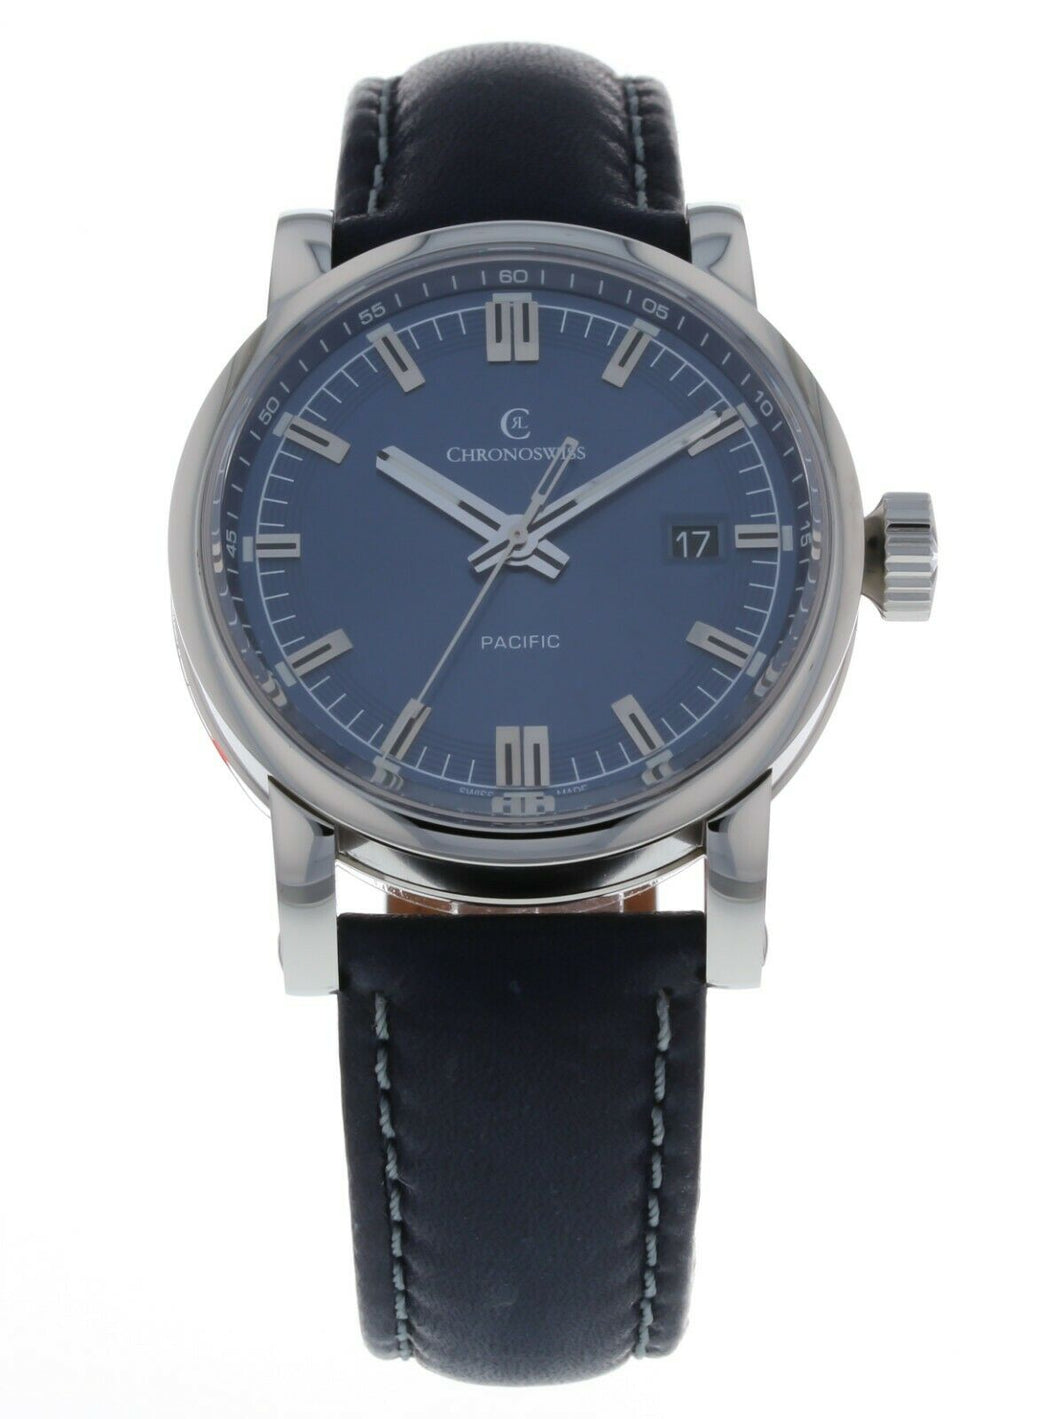 Chronoswiss Pacific Automatic Blue Dial 40mm Men's Watch CH-2883-BL/33-1